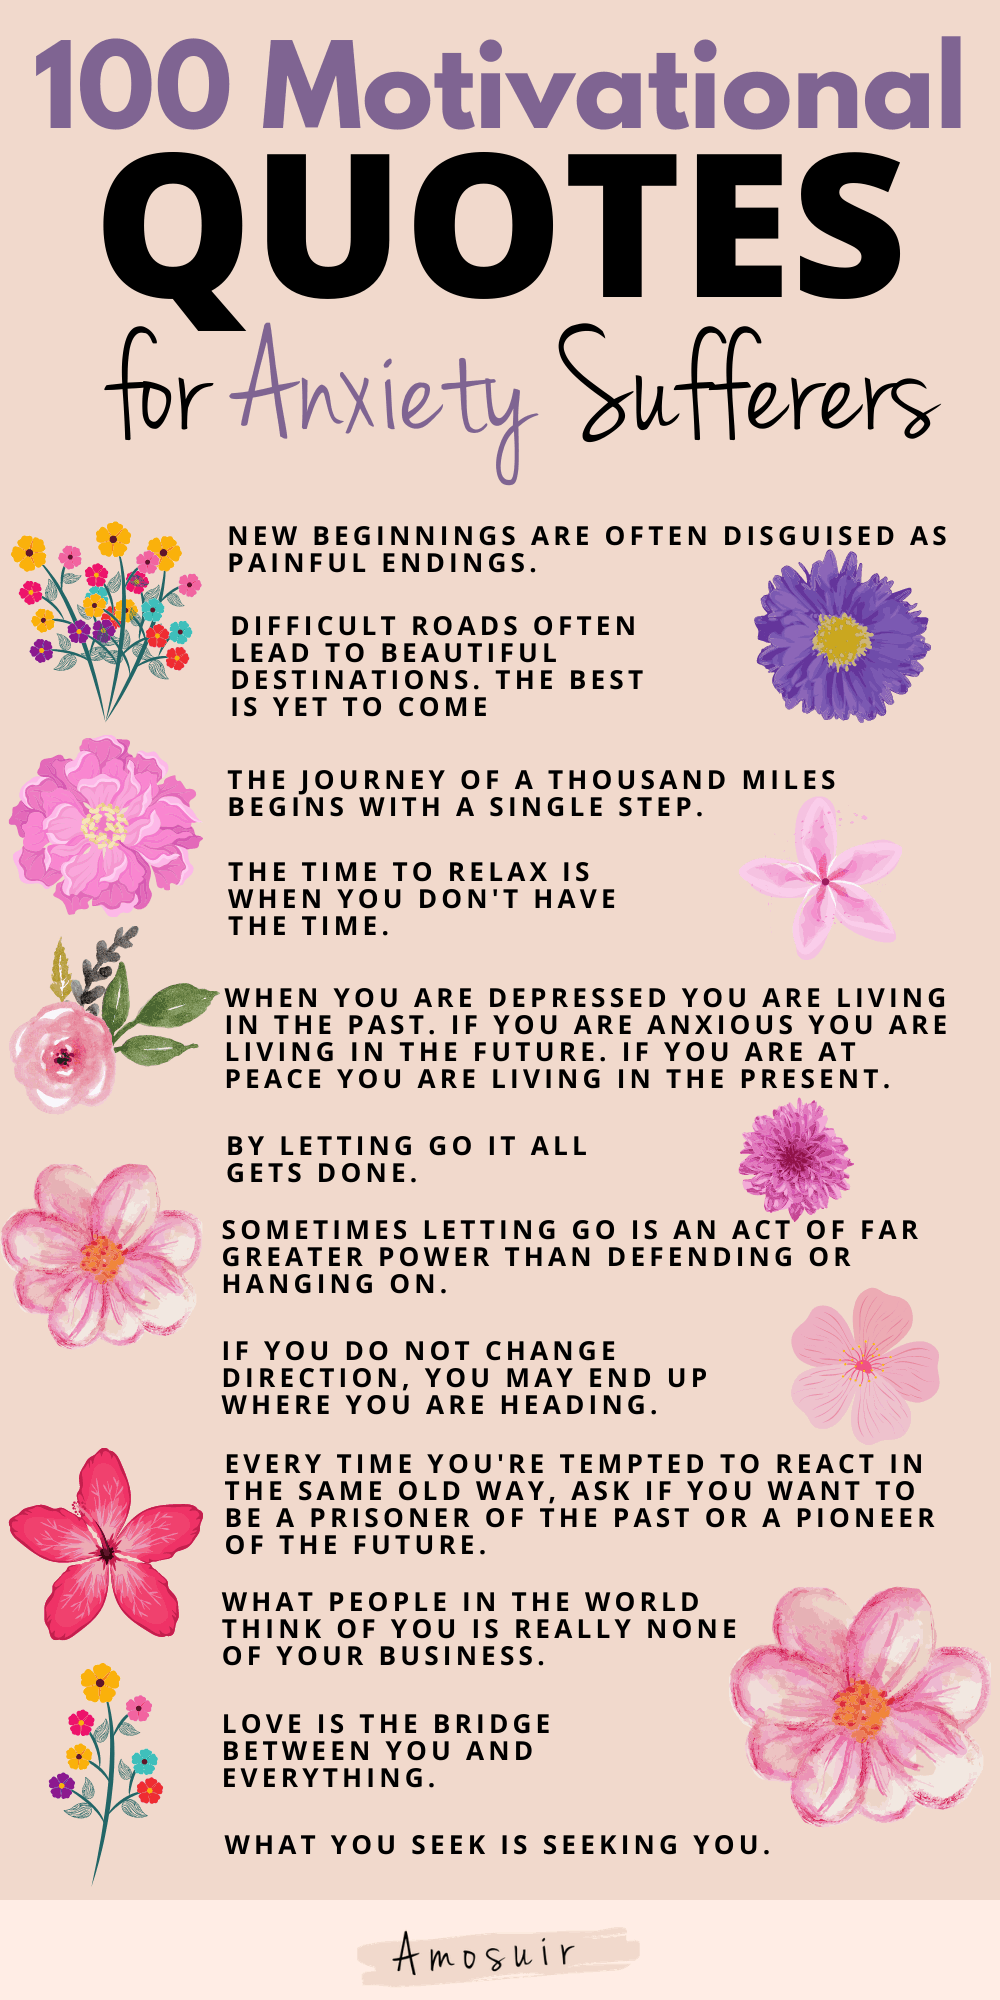 anxiety quotes infographic